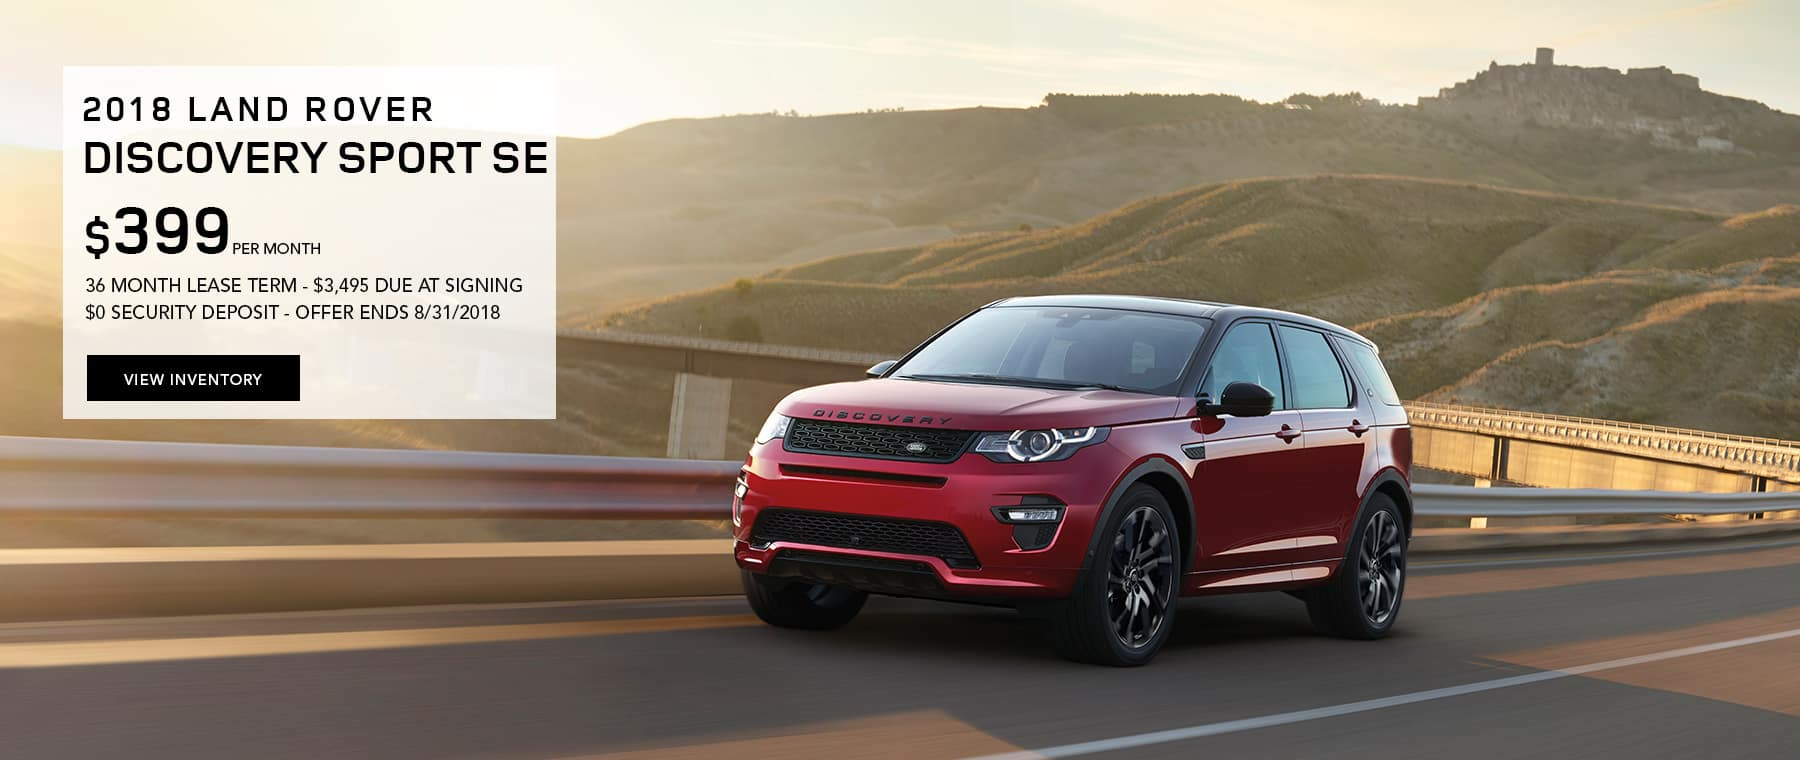 Discovery Sport Lease Offer Banner